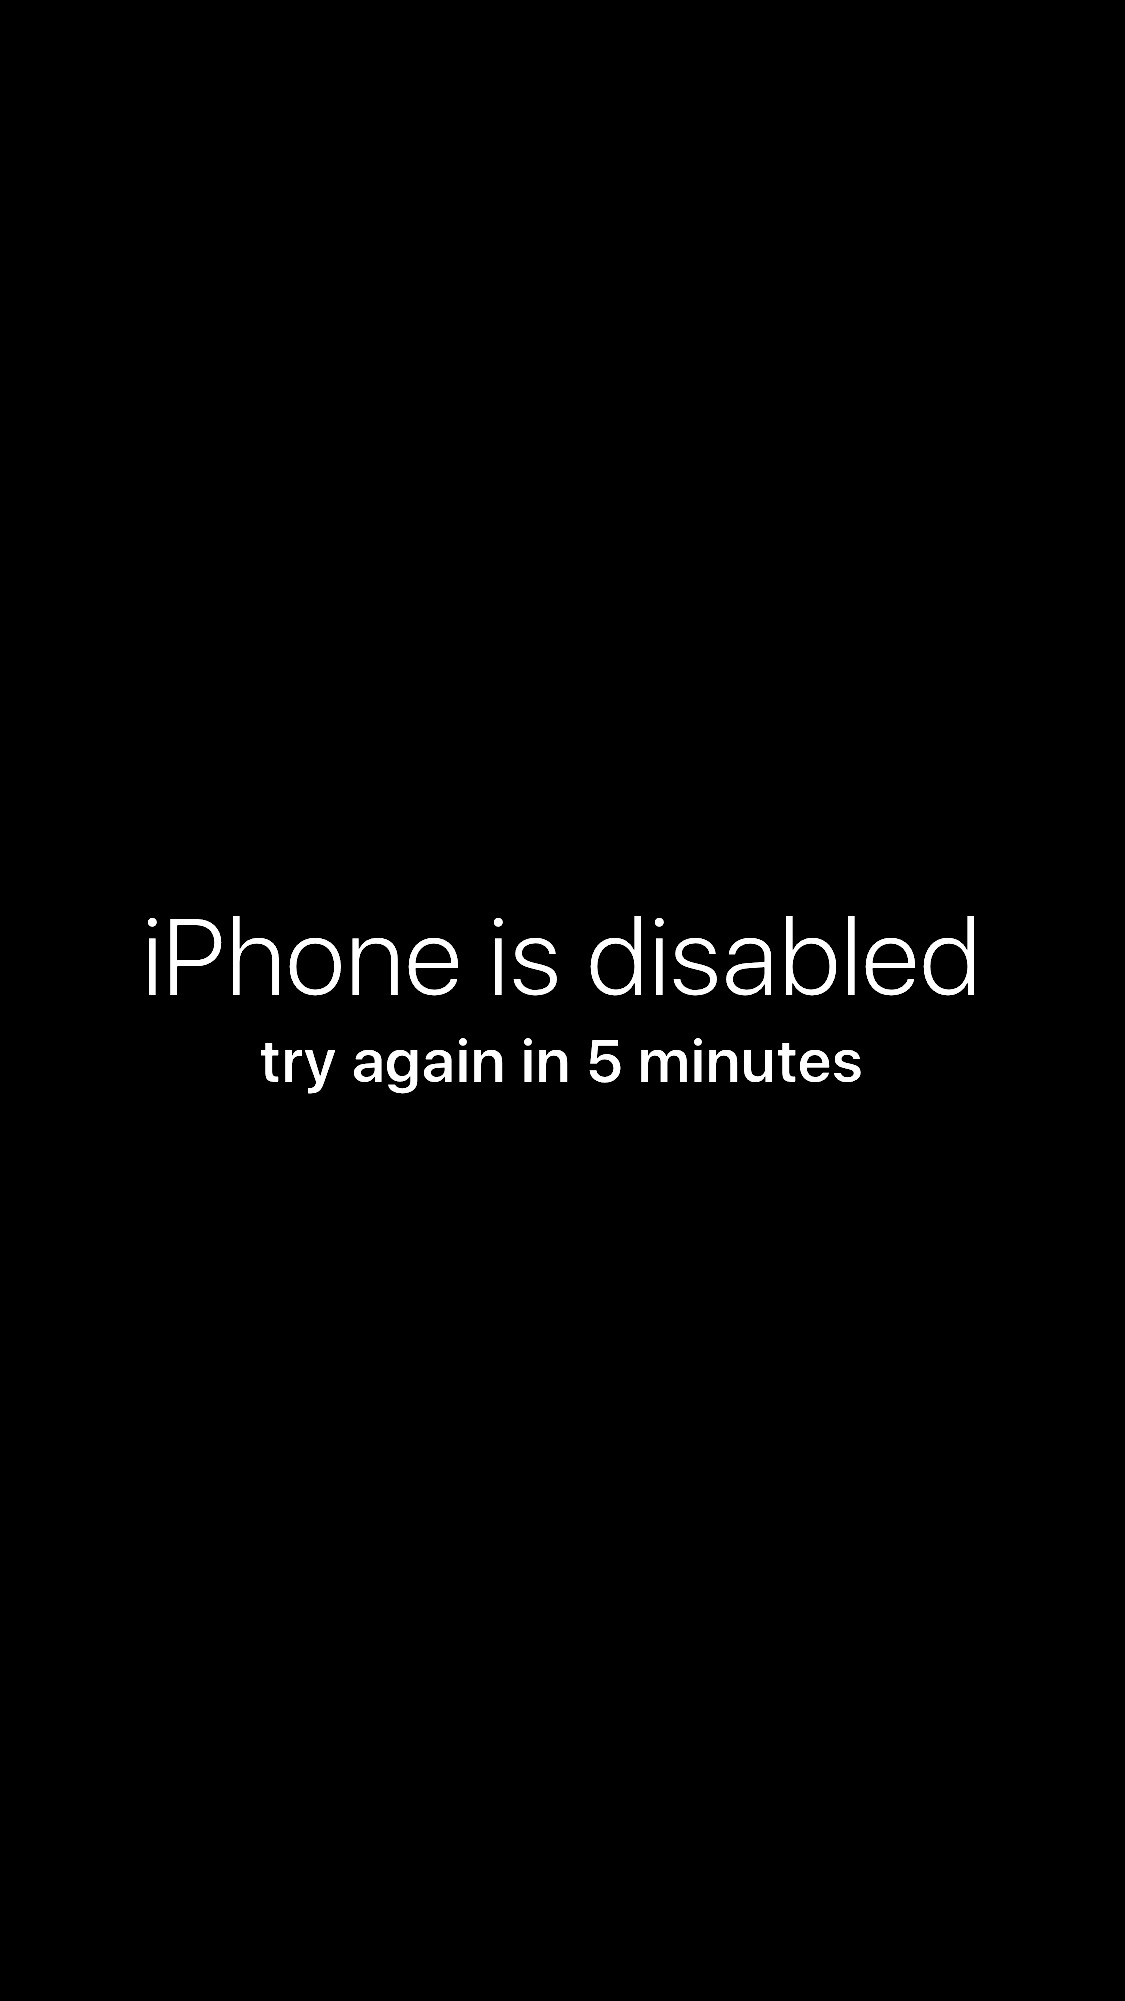 iPhone is disabled, try again wallpaper prank